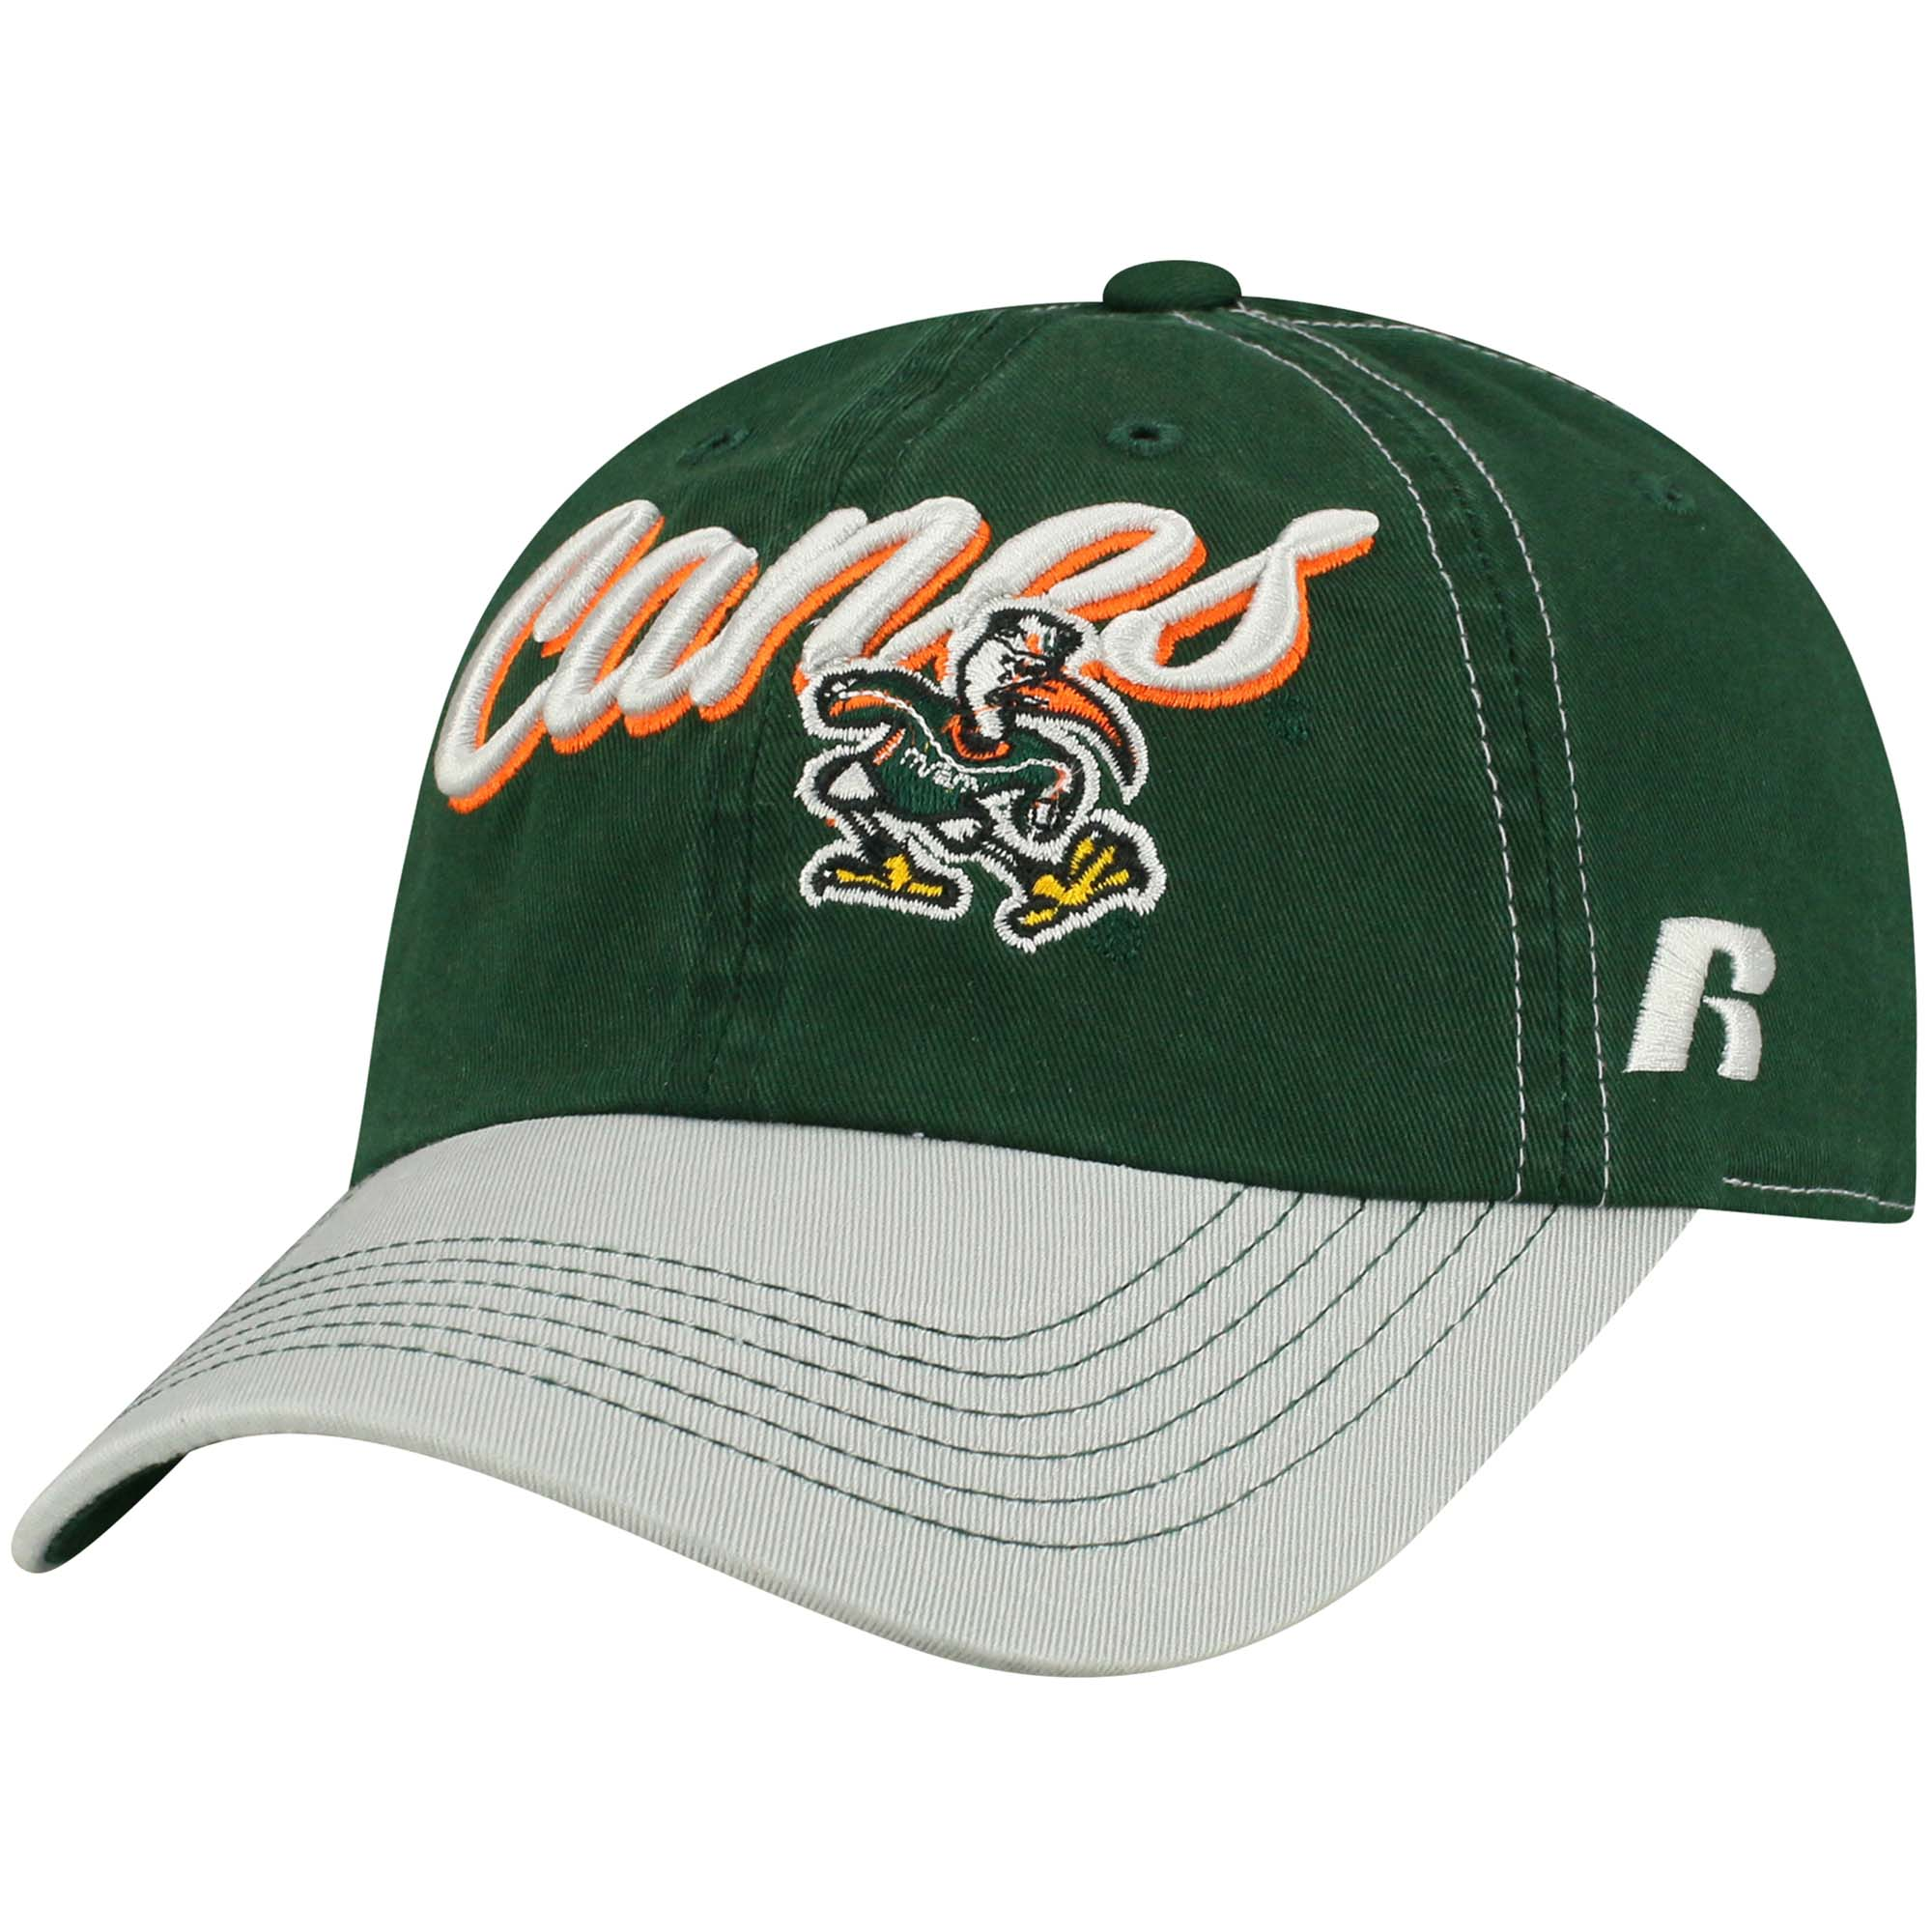 Women's Russell Green Miami Hurricanes Sojourn Adjustable Hat - OSFA